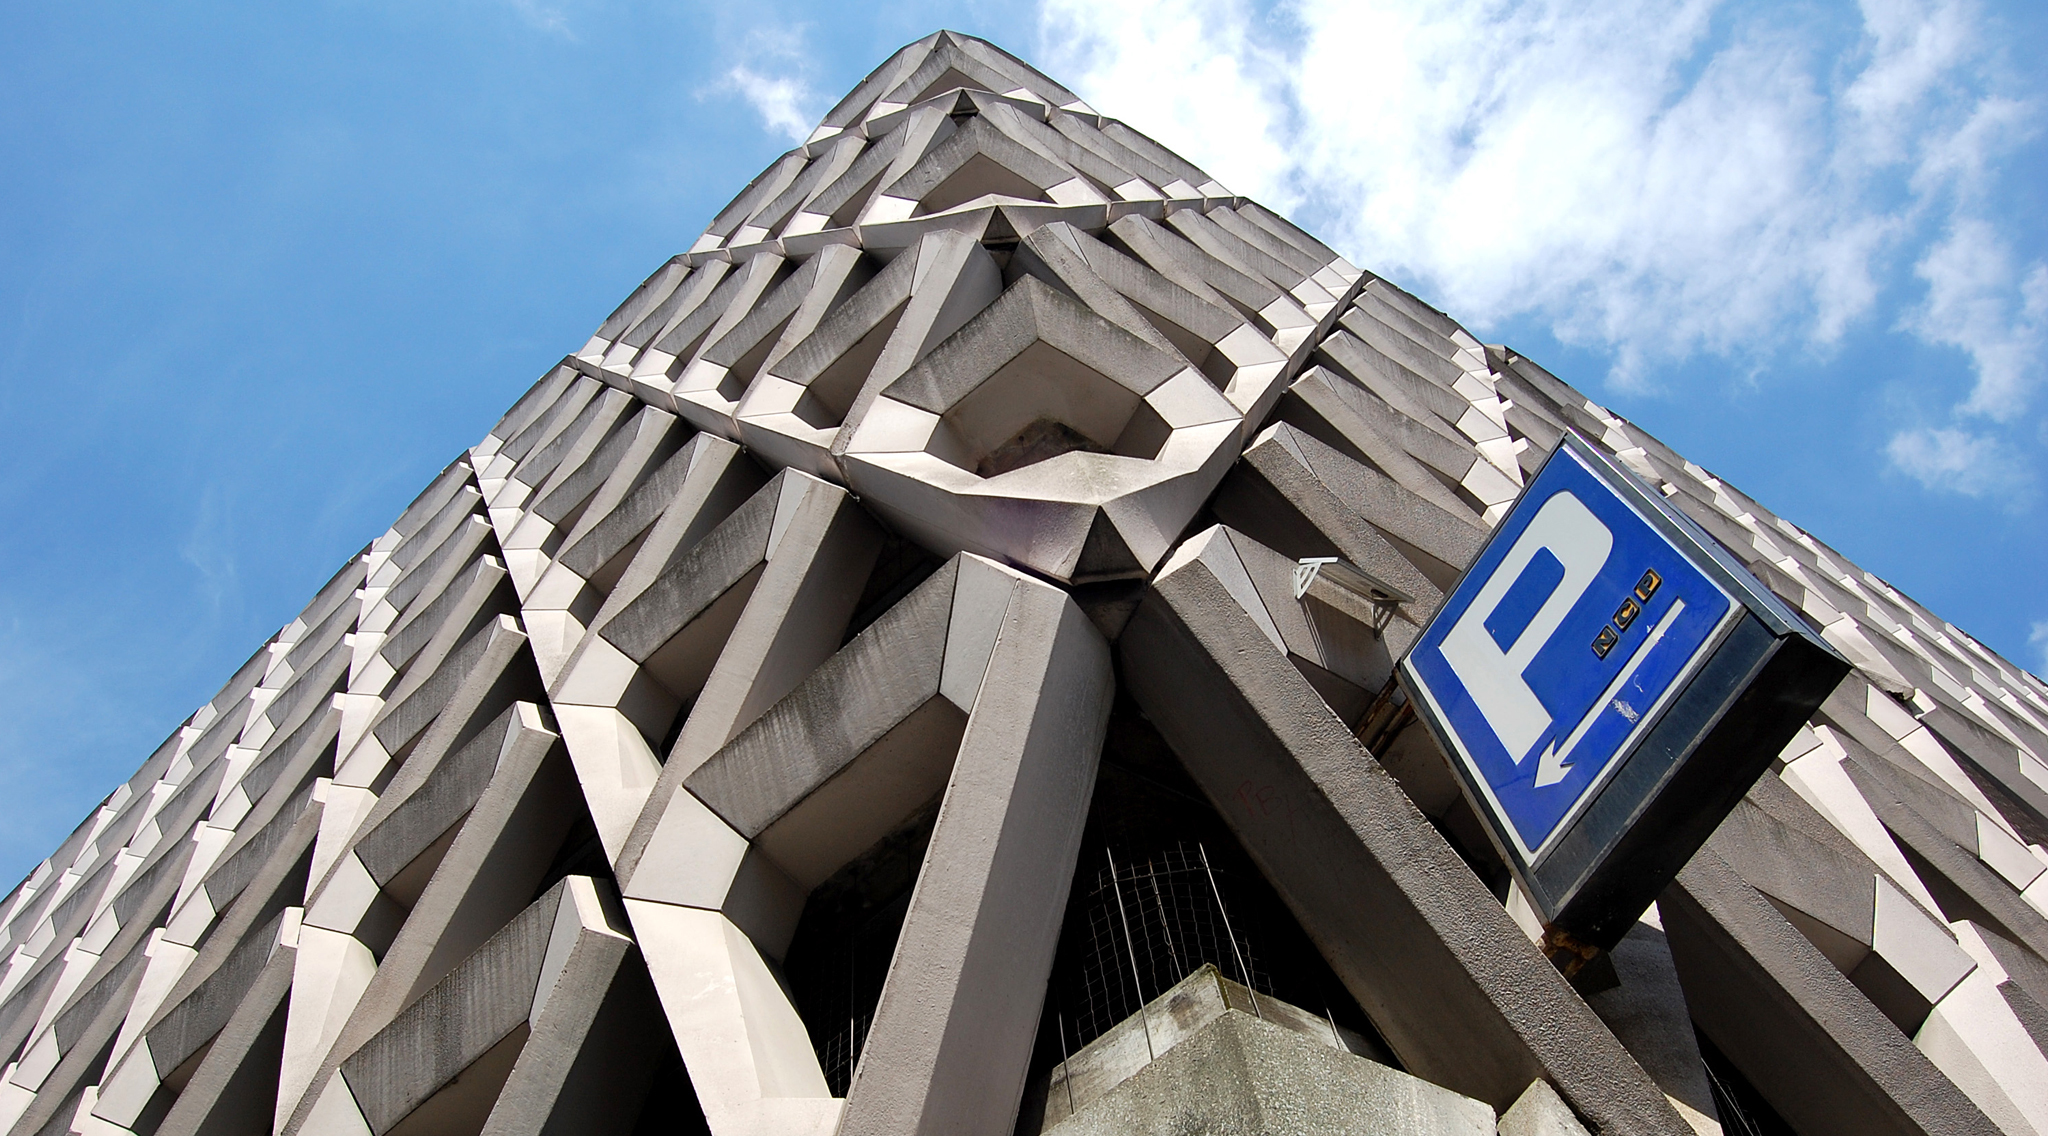 Best buildings in London: Welbeck Street car park